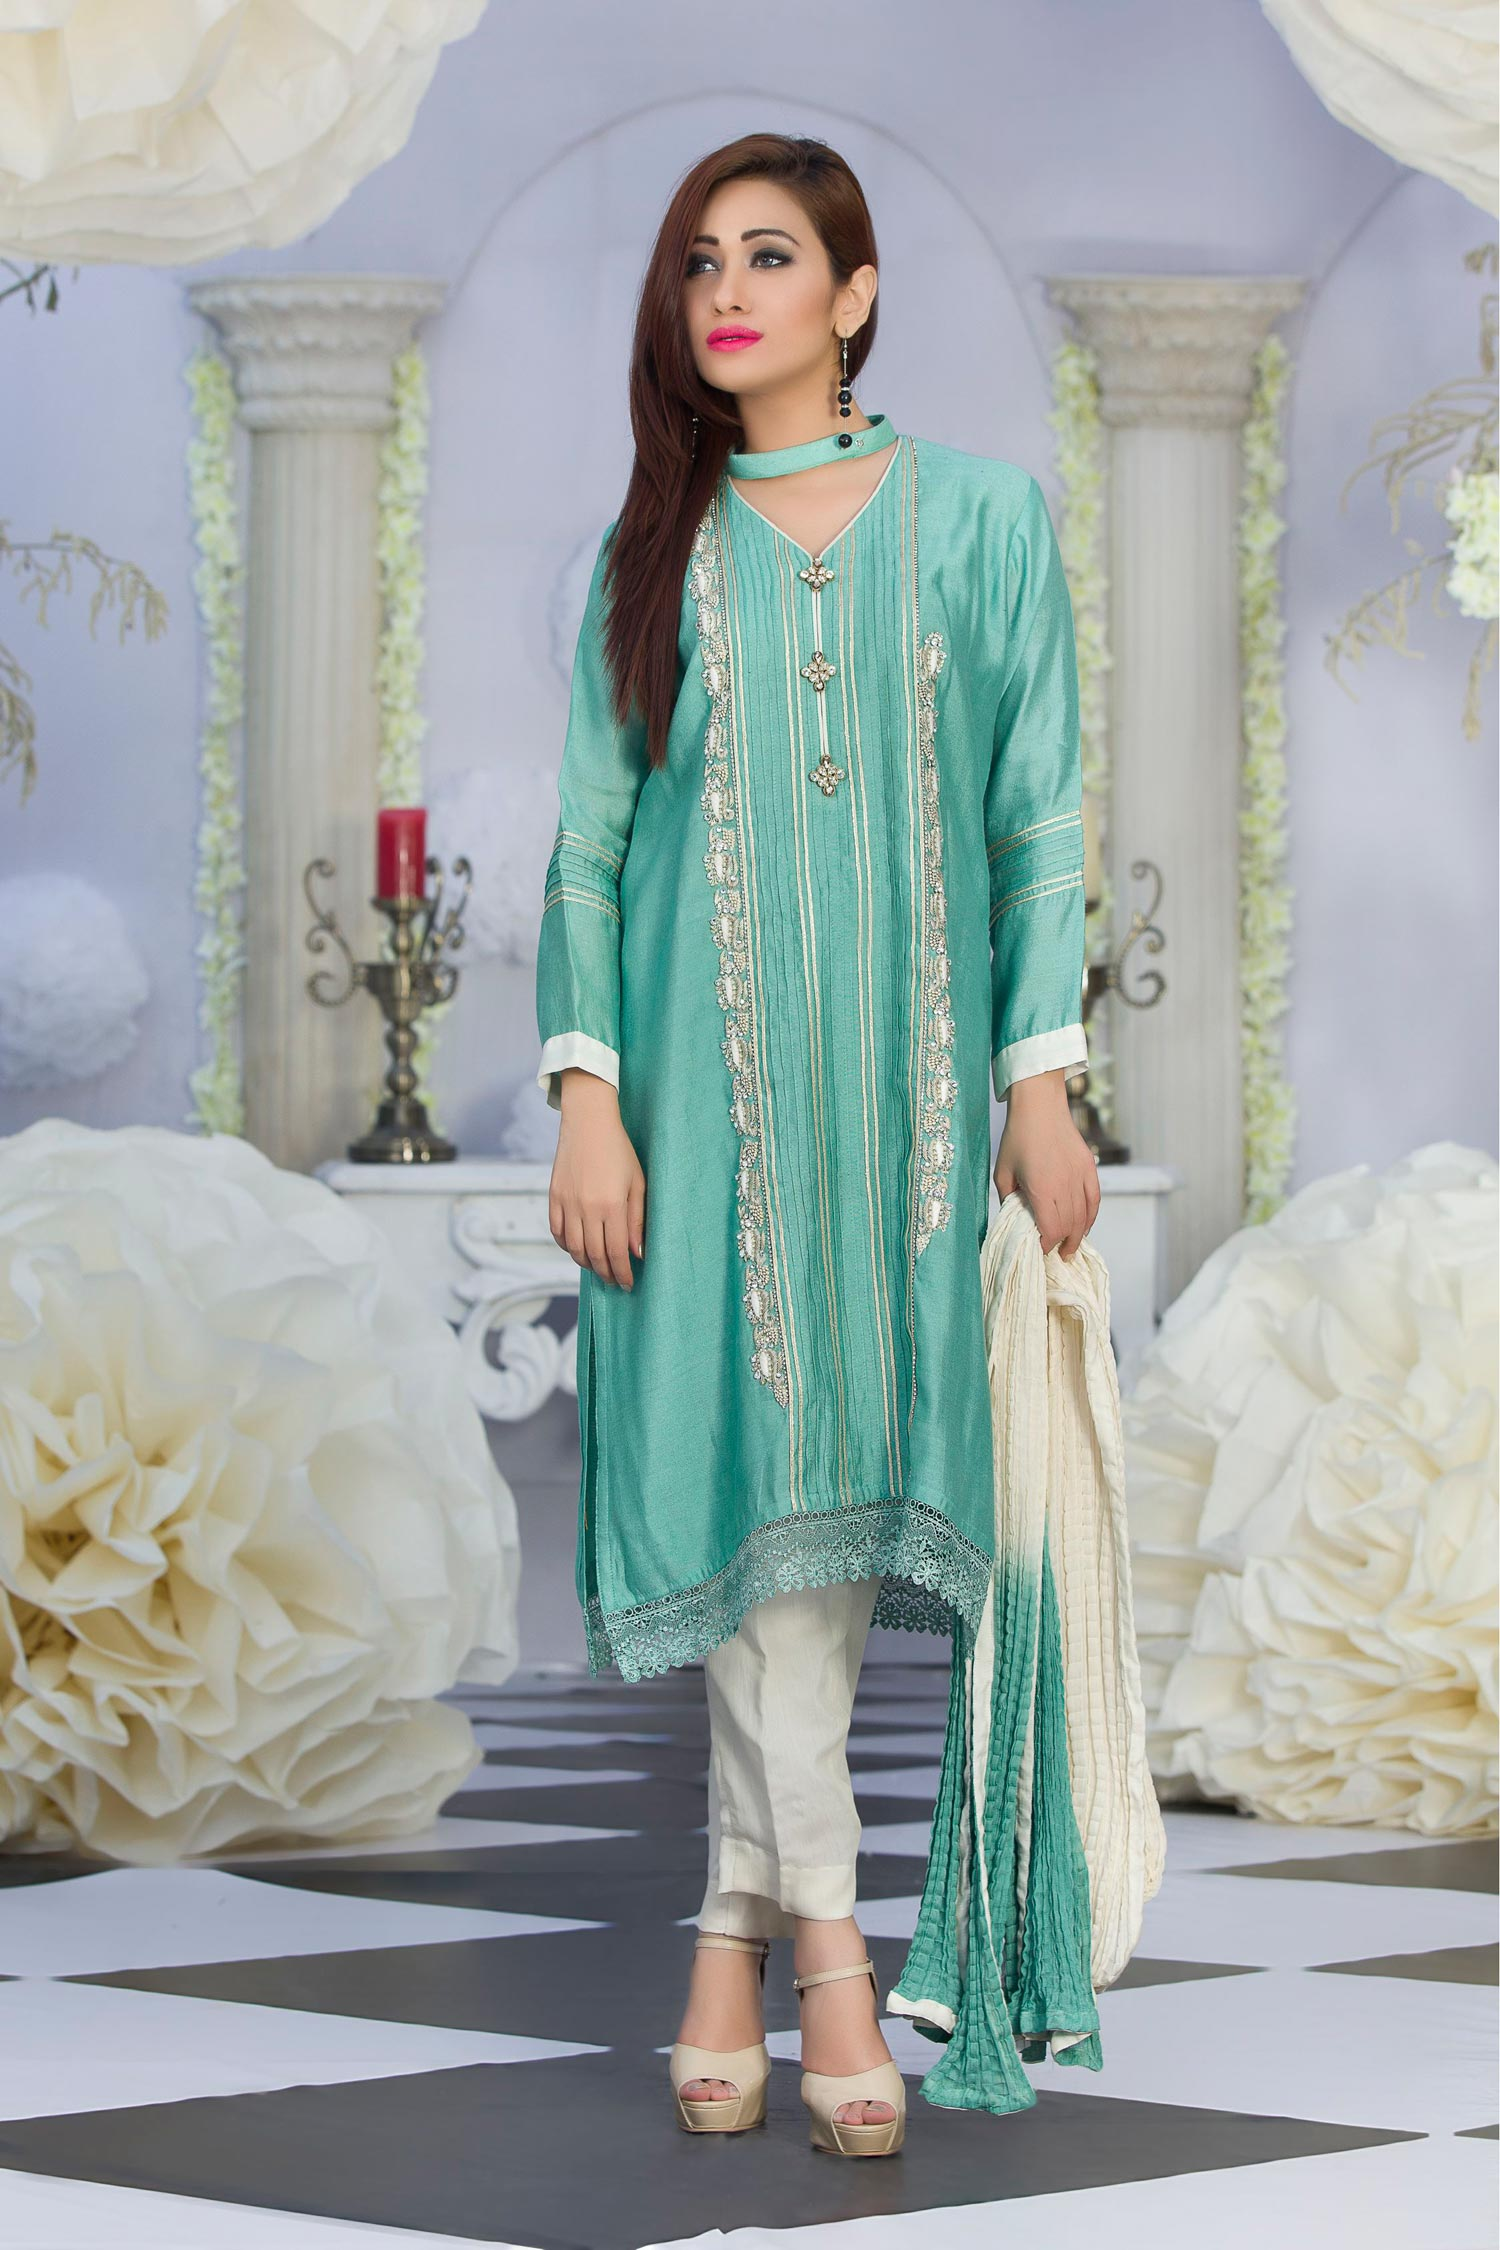 Exclusive Feerozi Green Color Latest Design Party Dress - Exclusive ...